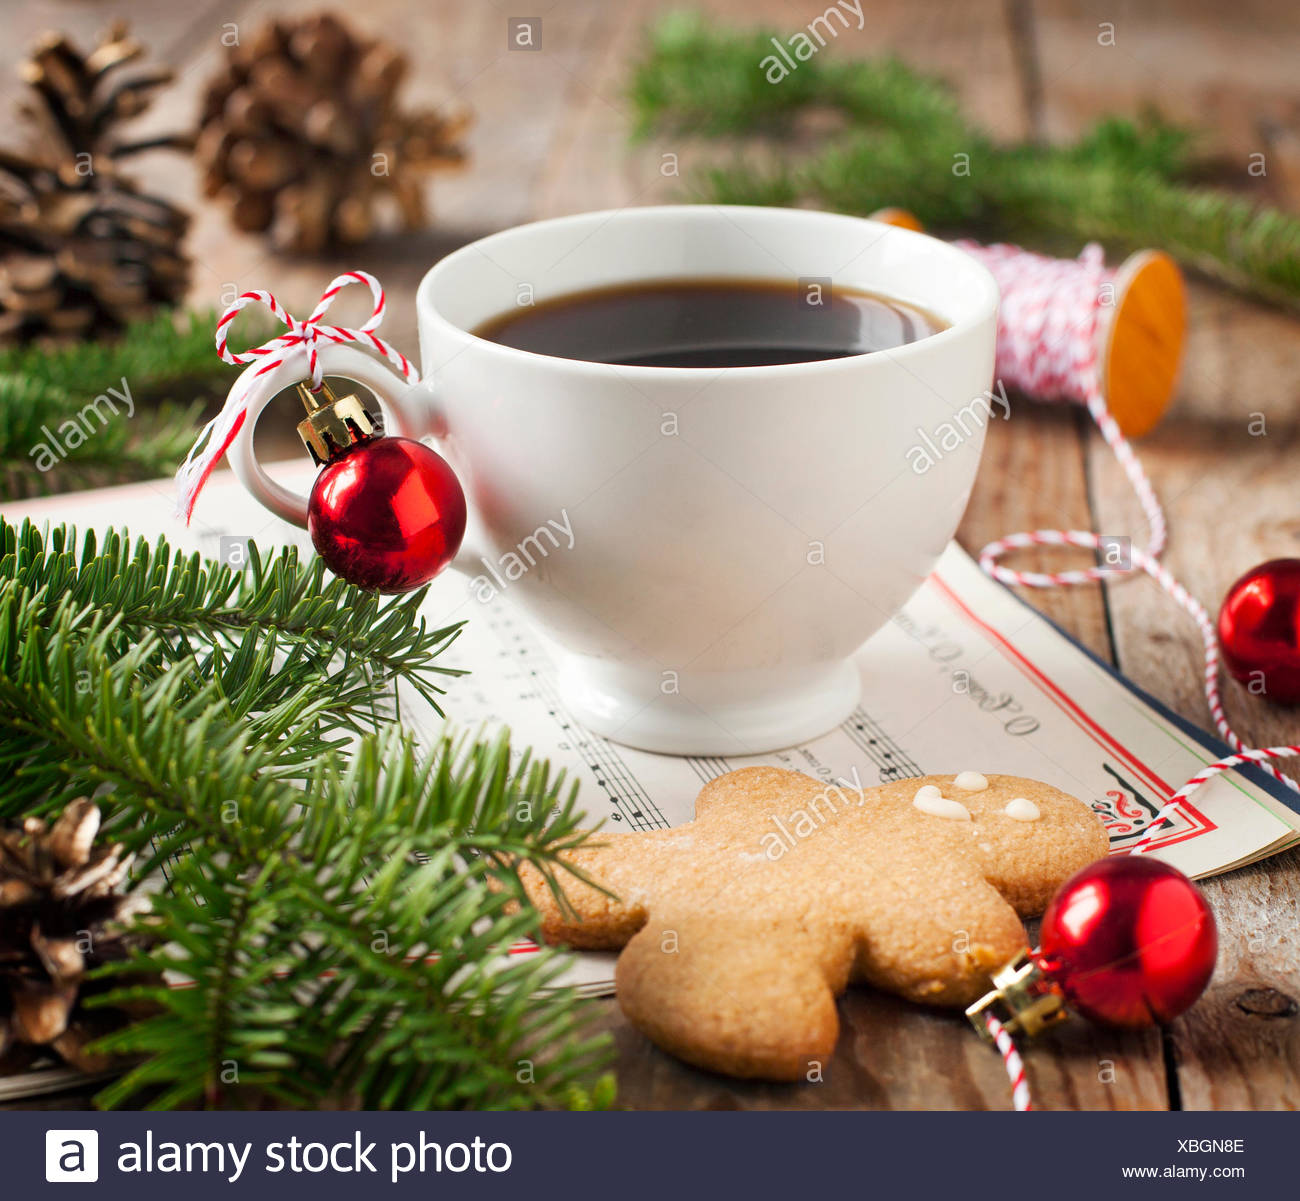 Christmas Decorations For Coffee Shops: Christmas Gingerbread Man Stock Photos & Christmas